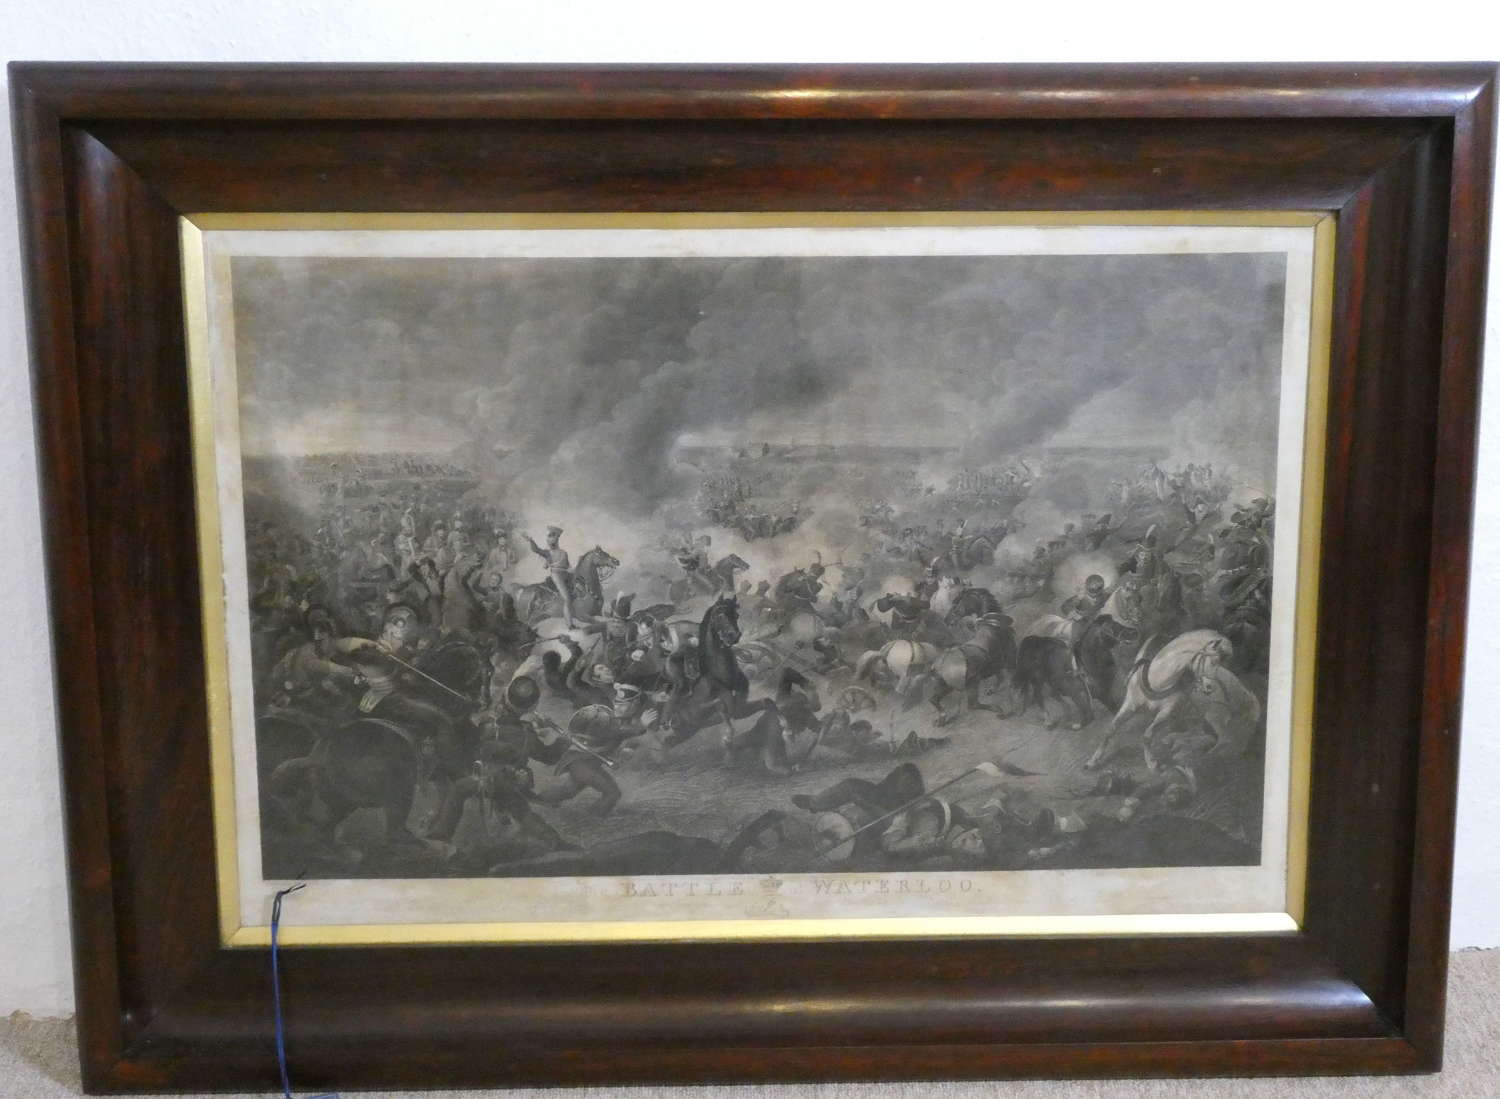 Pair of Engravings of the Battle of Waterloo